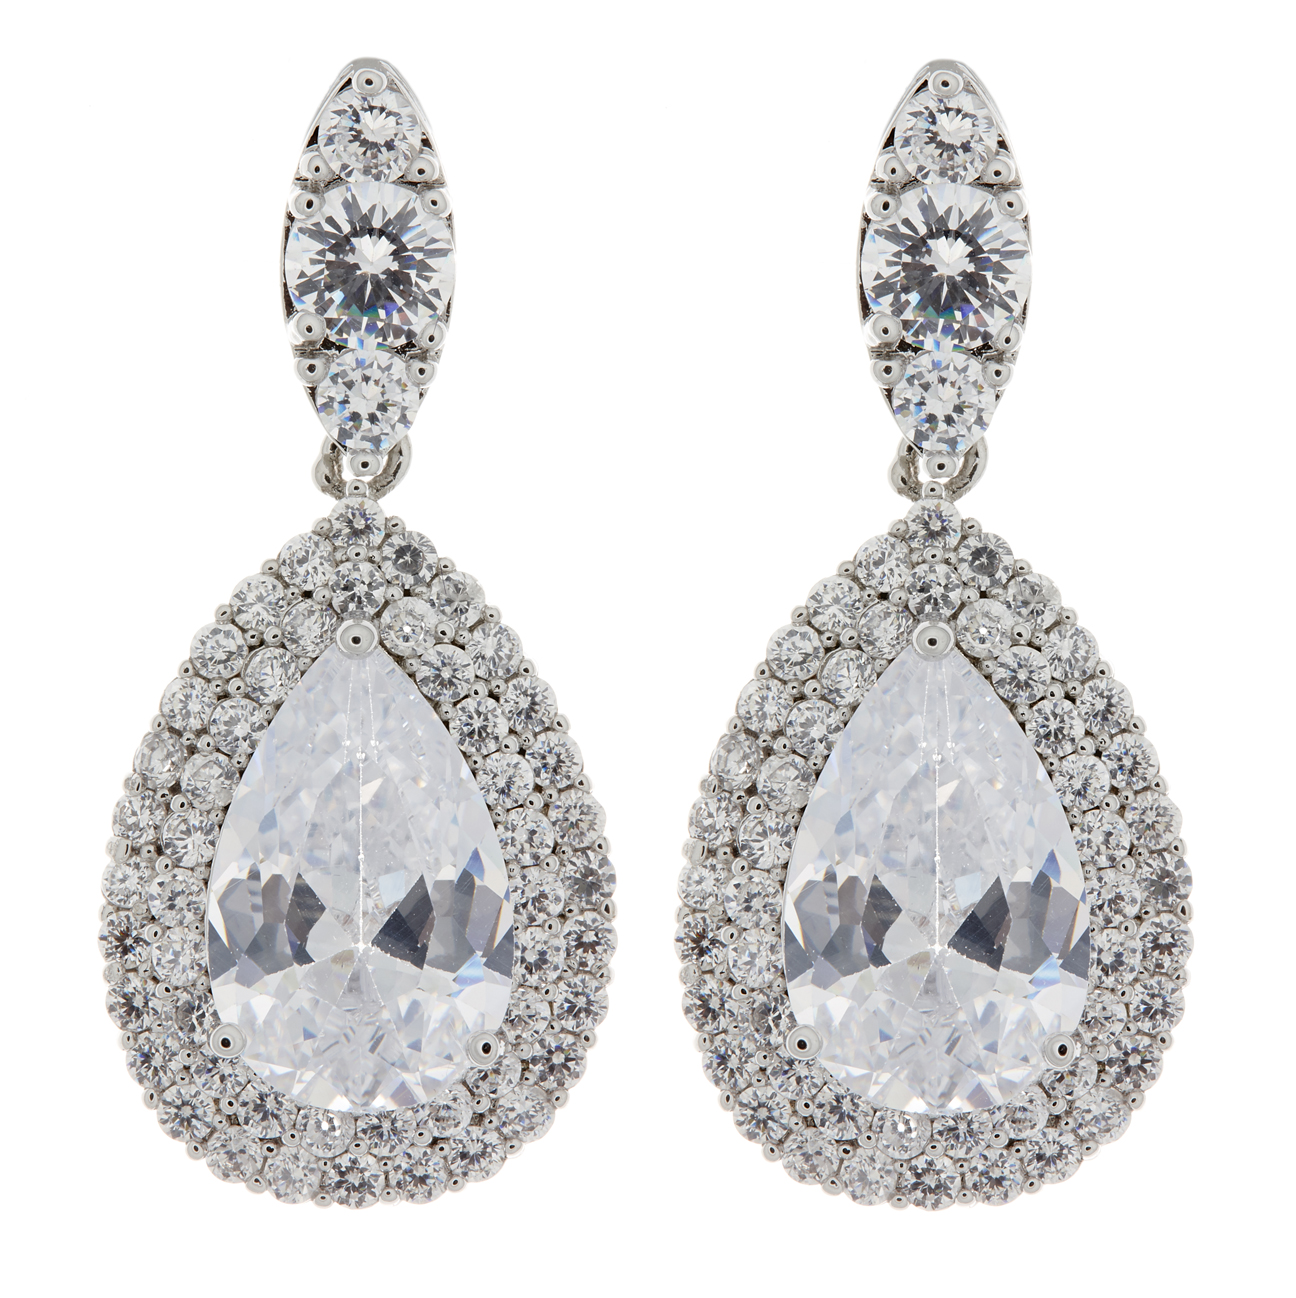 Clip On Earrings - Mavis - silver luxury drop earring with clear cubic zirconia crystals and stone